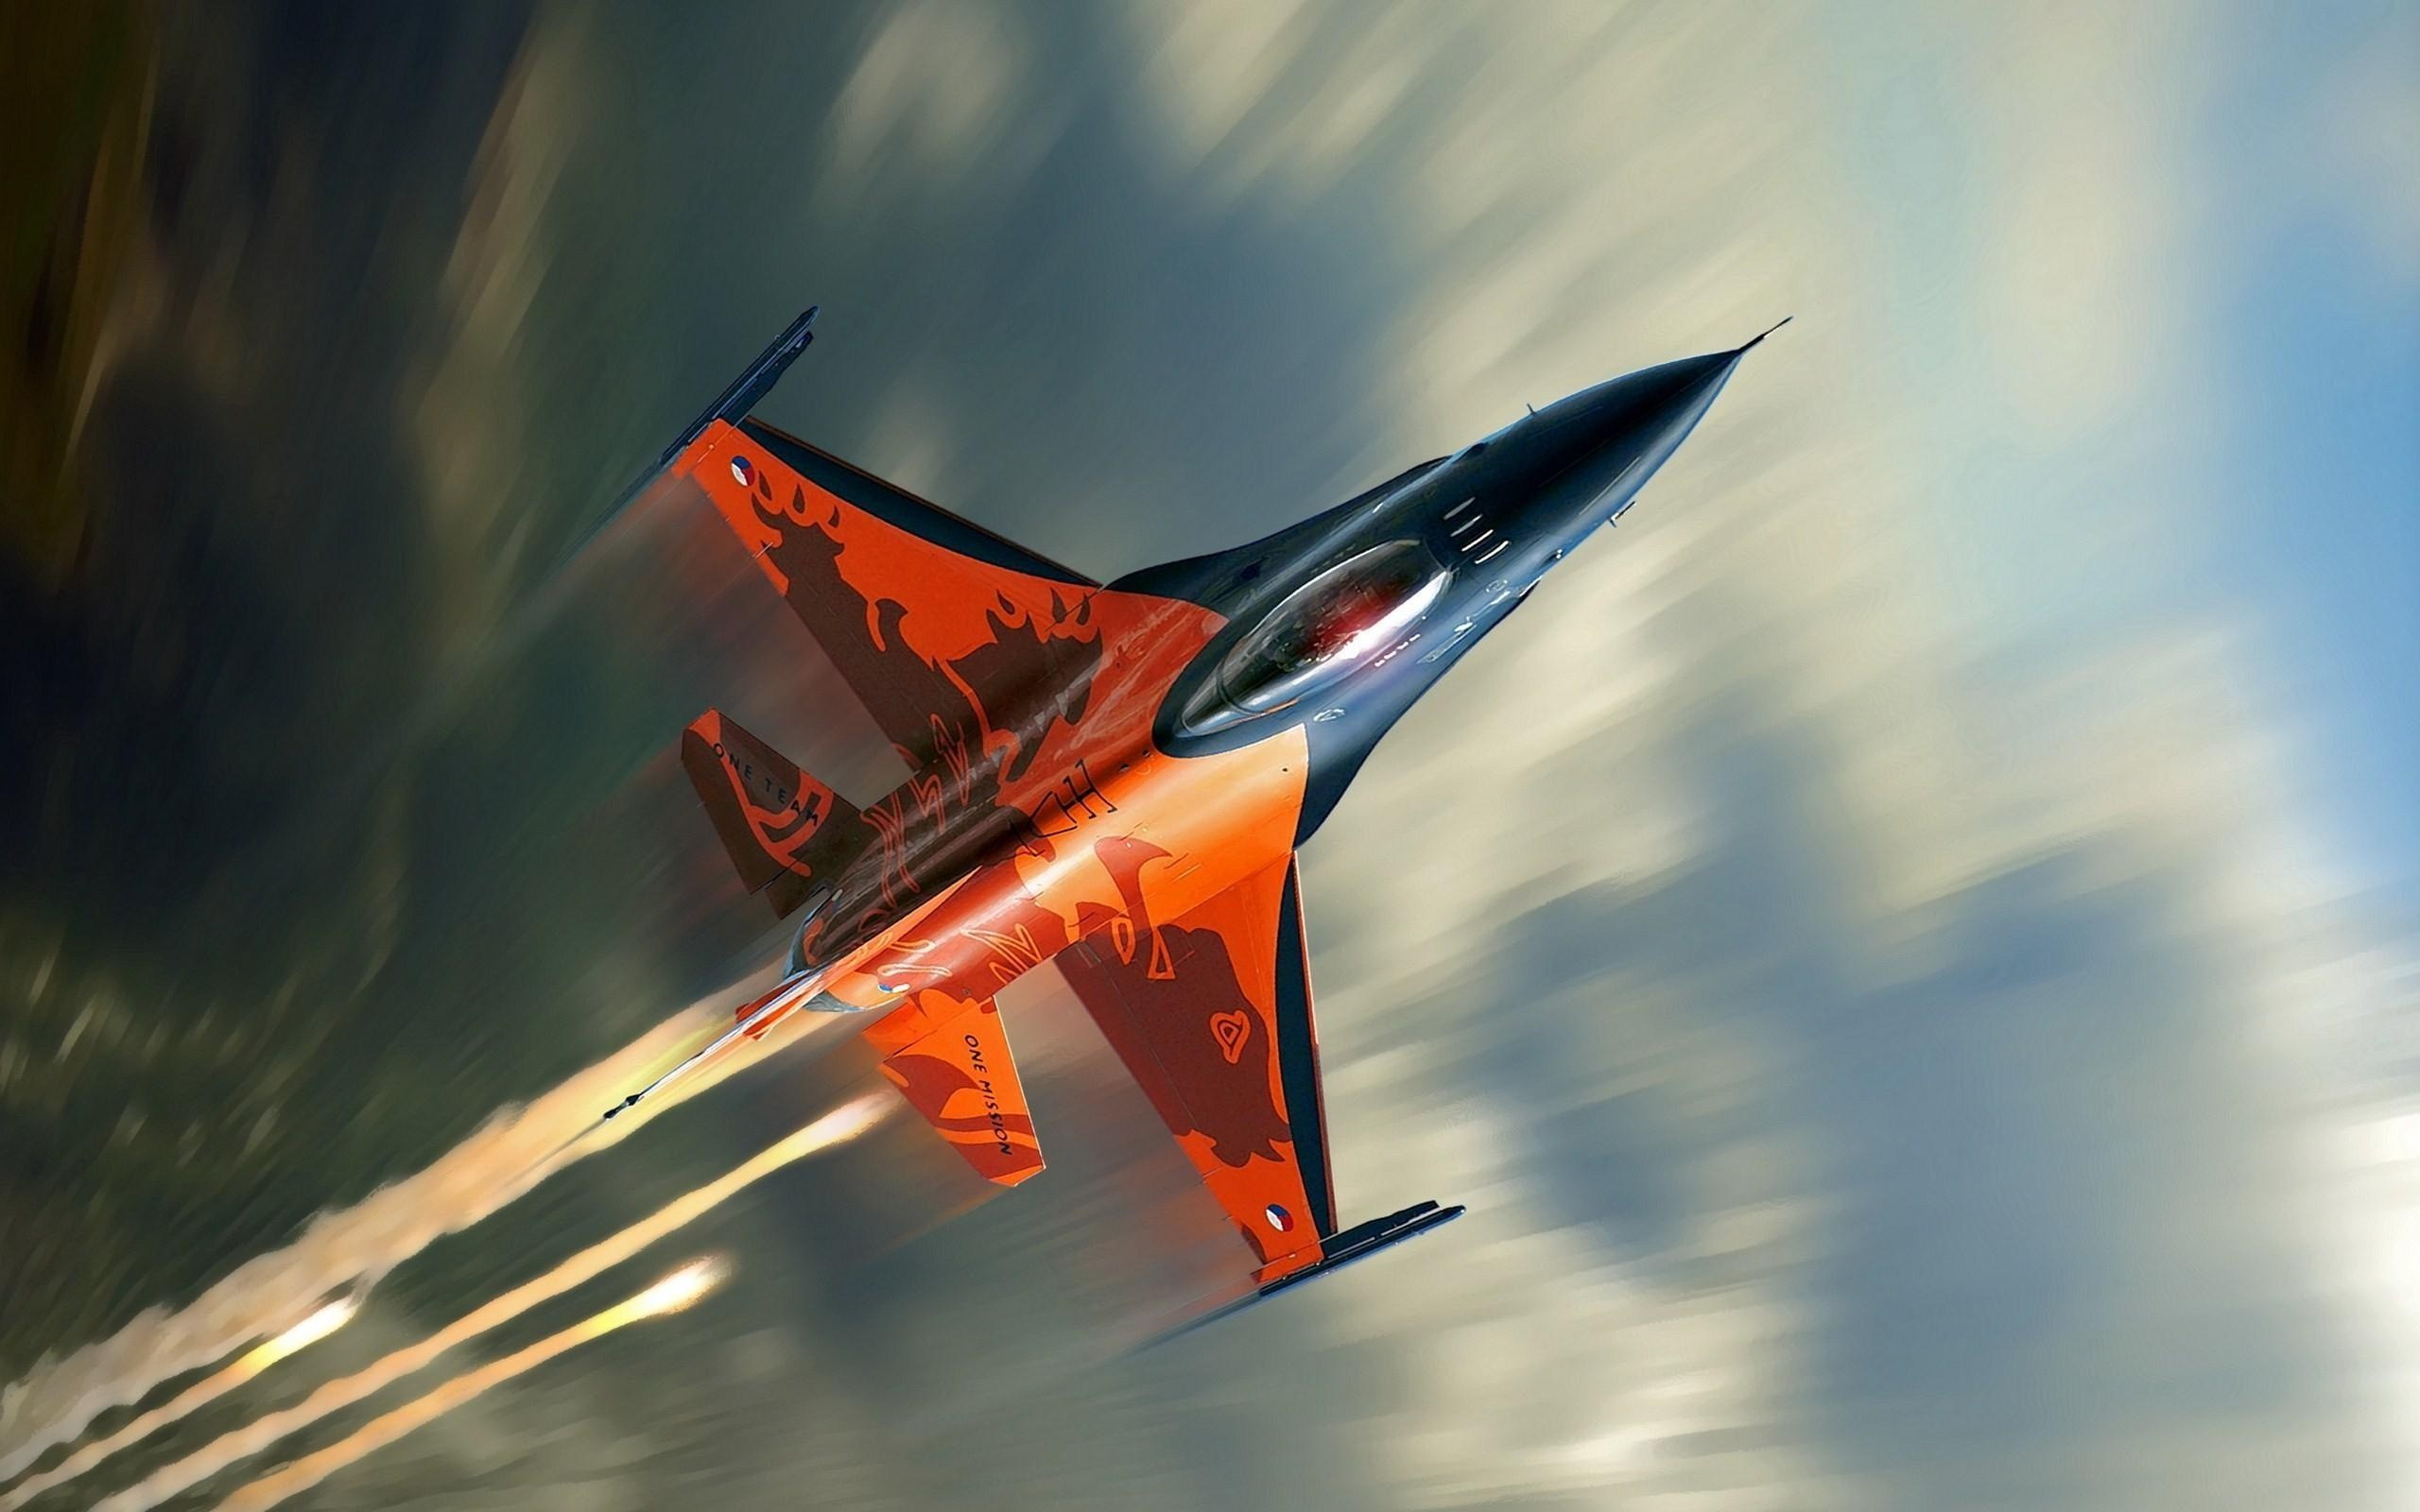 16 Fighting Falcon Fighter Aircraft Wallpapers HD Wallpapers 2560x1600